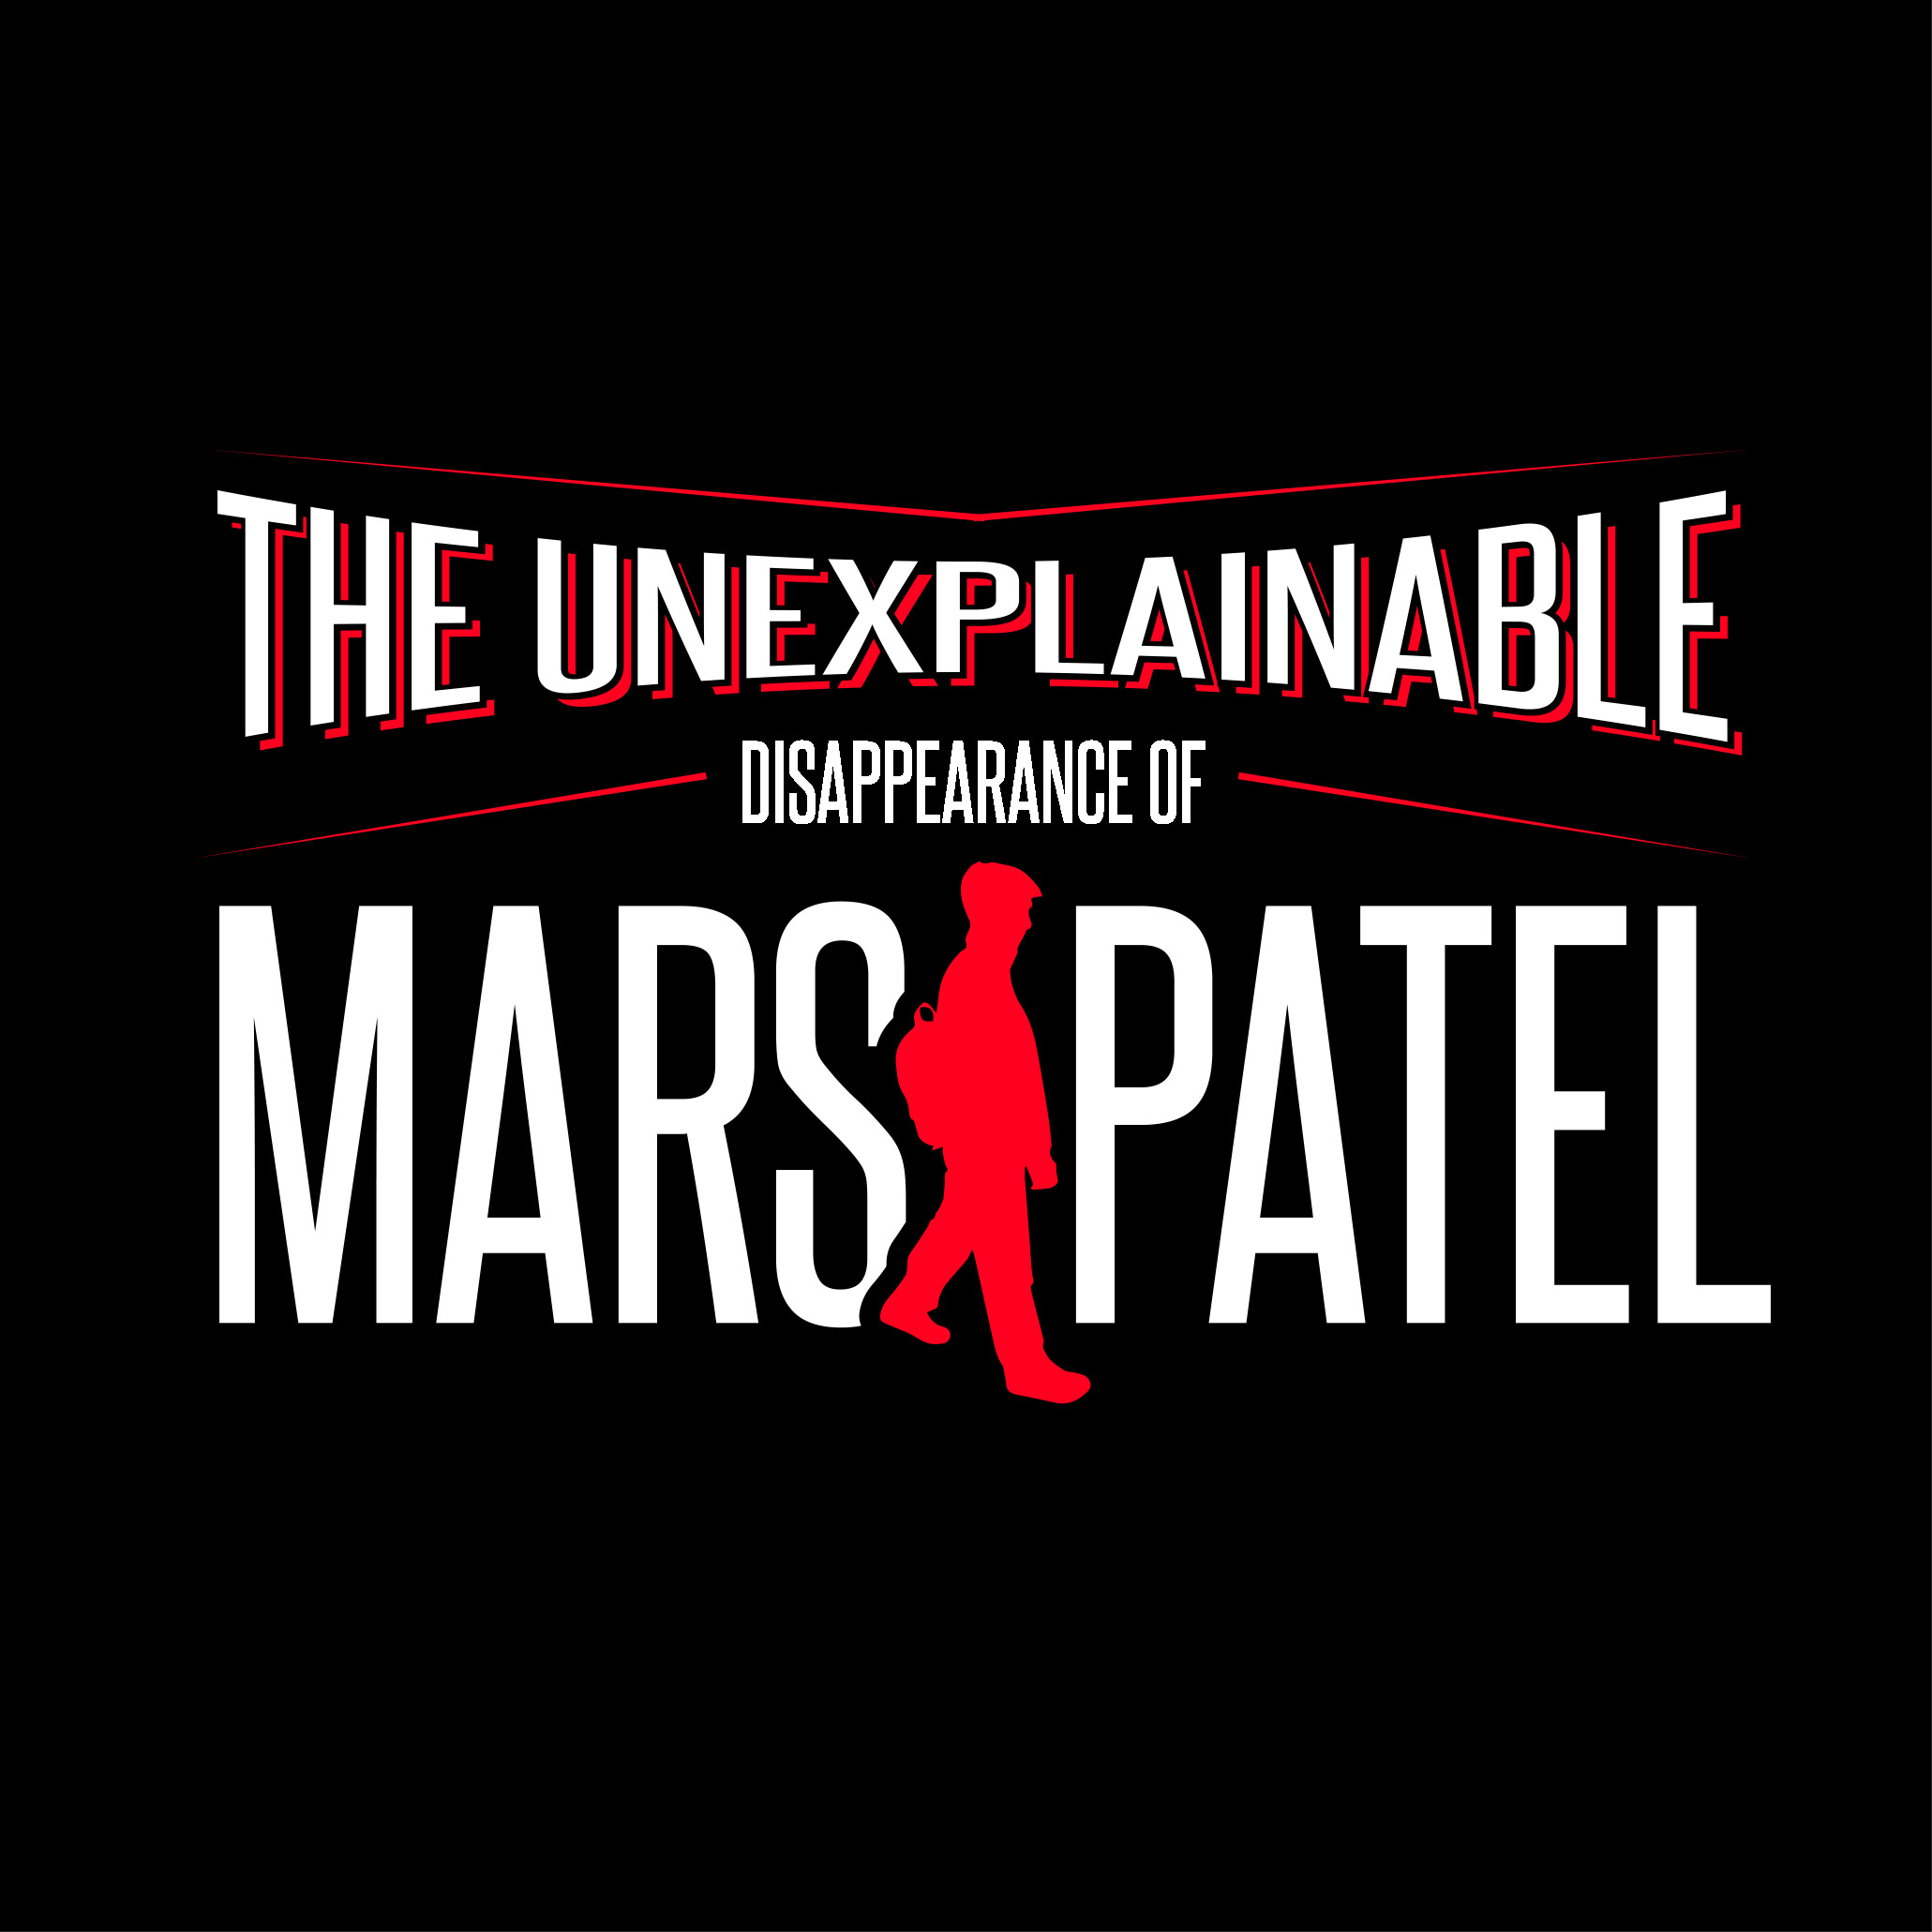 The Unexplainable Disappearance of Mars Patel logo